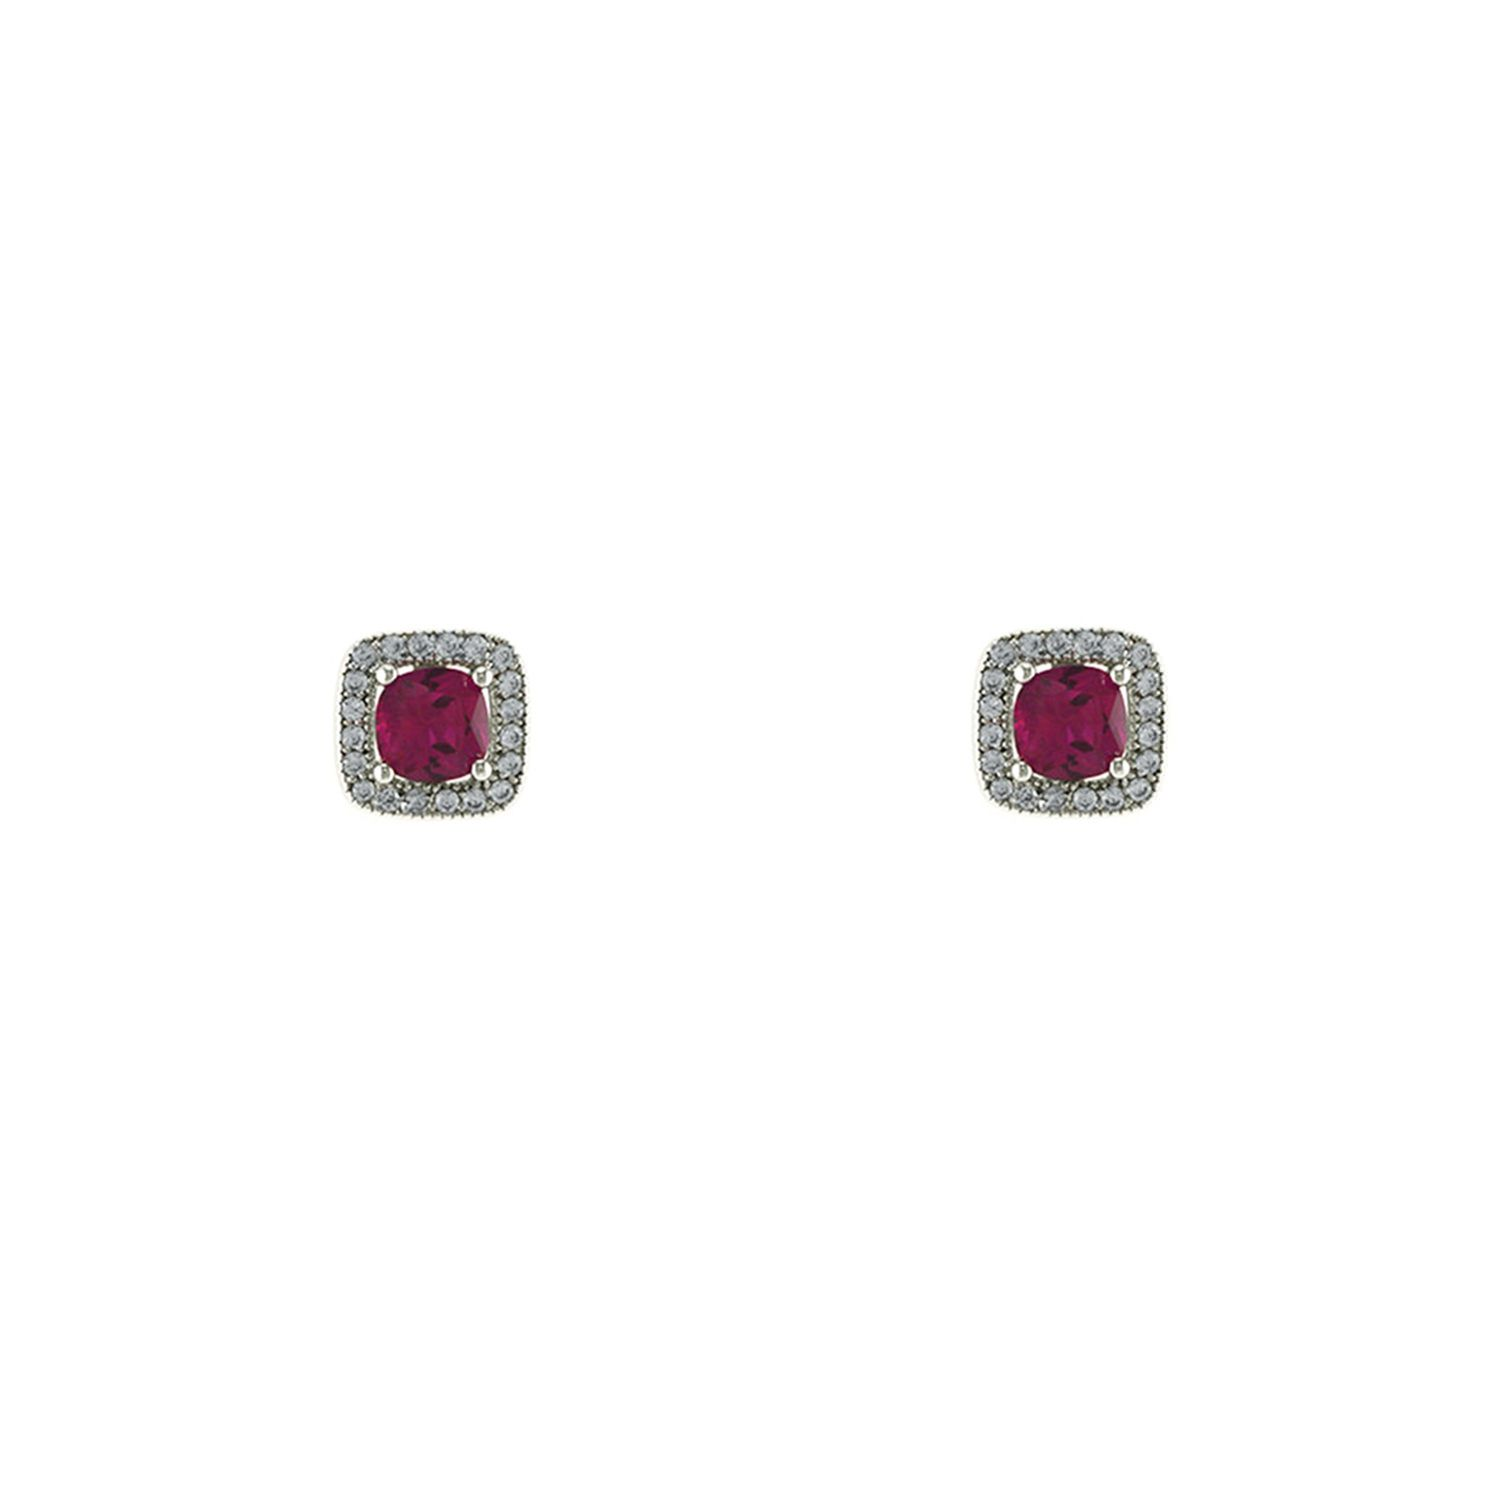 These Sweet Treat Studs are small, sweet,and perfect to take you from day to night. Grab one color or grab them all!